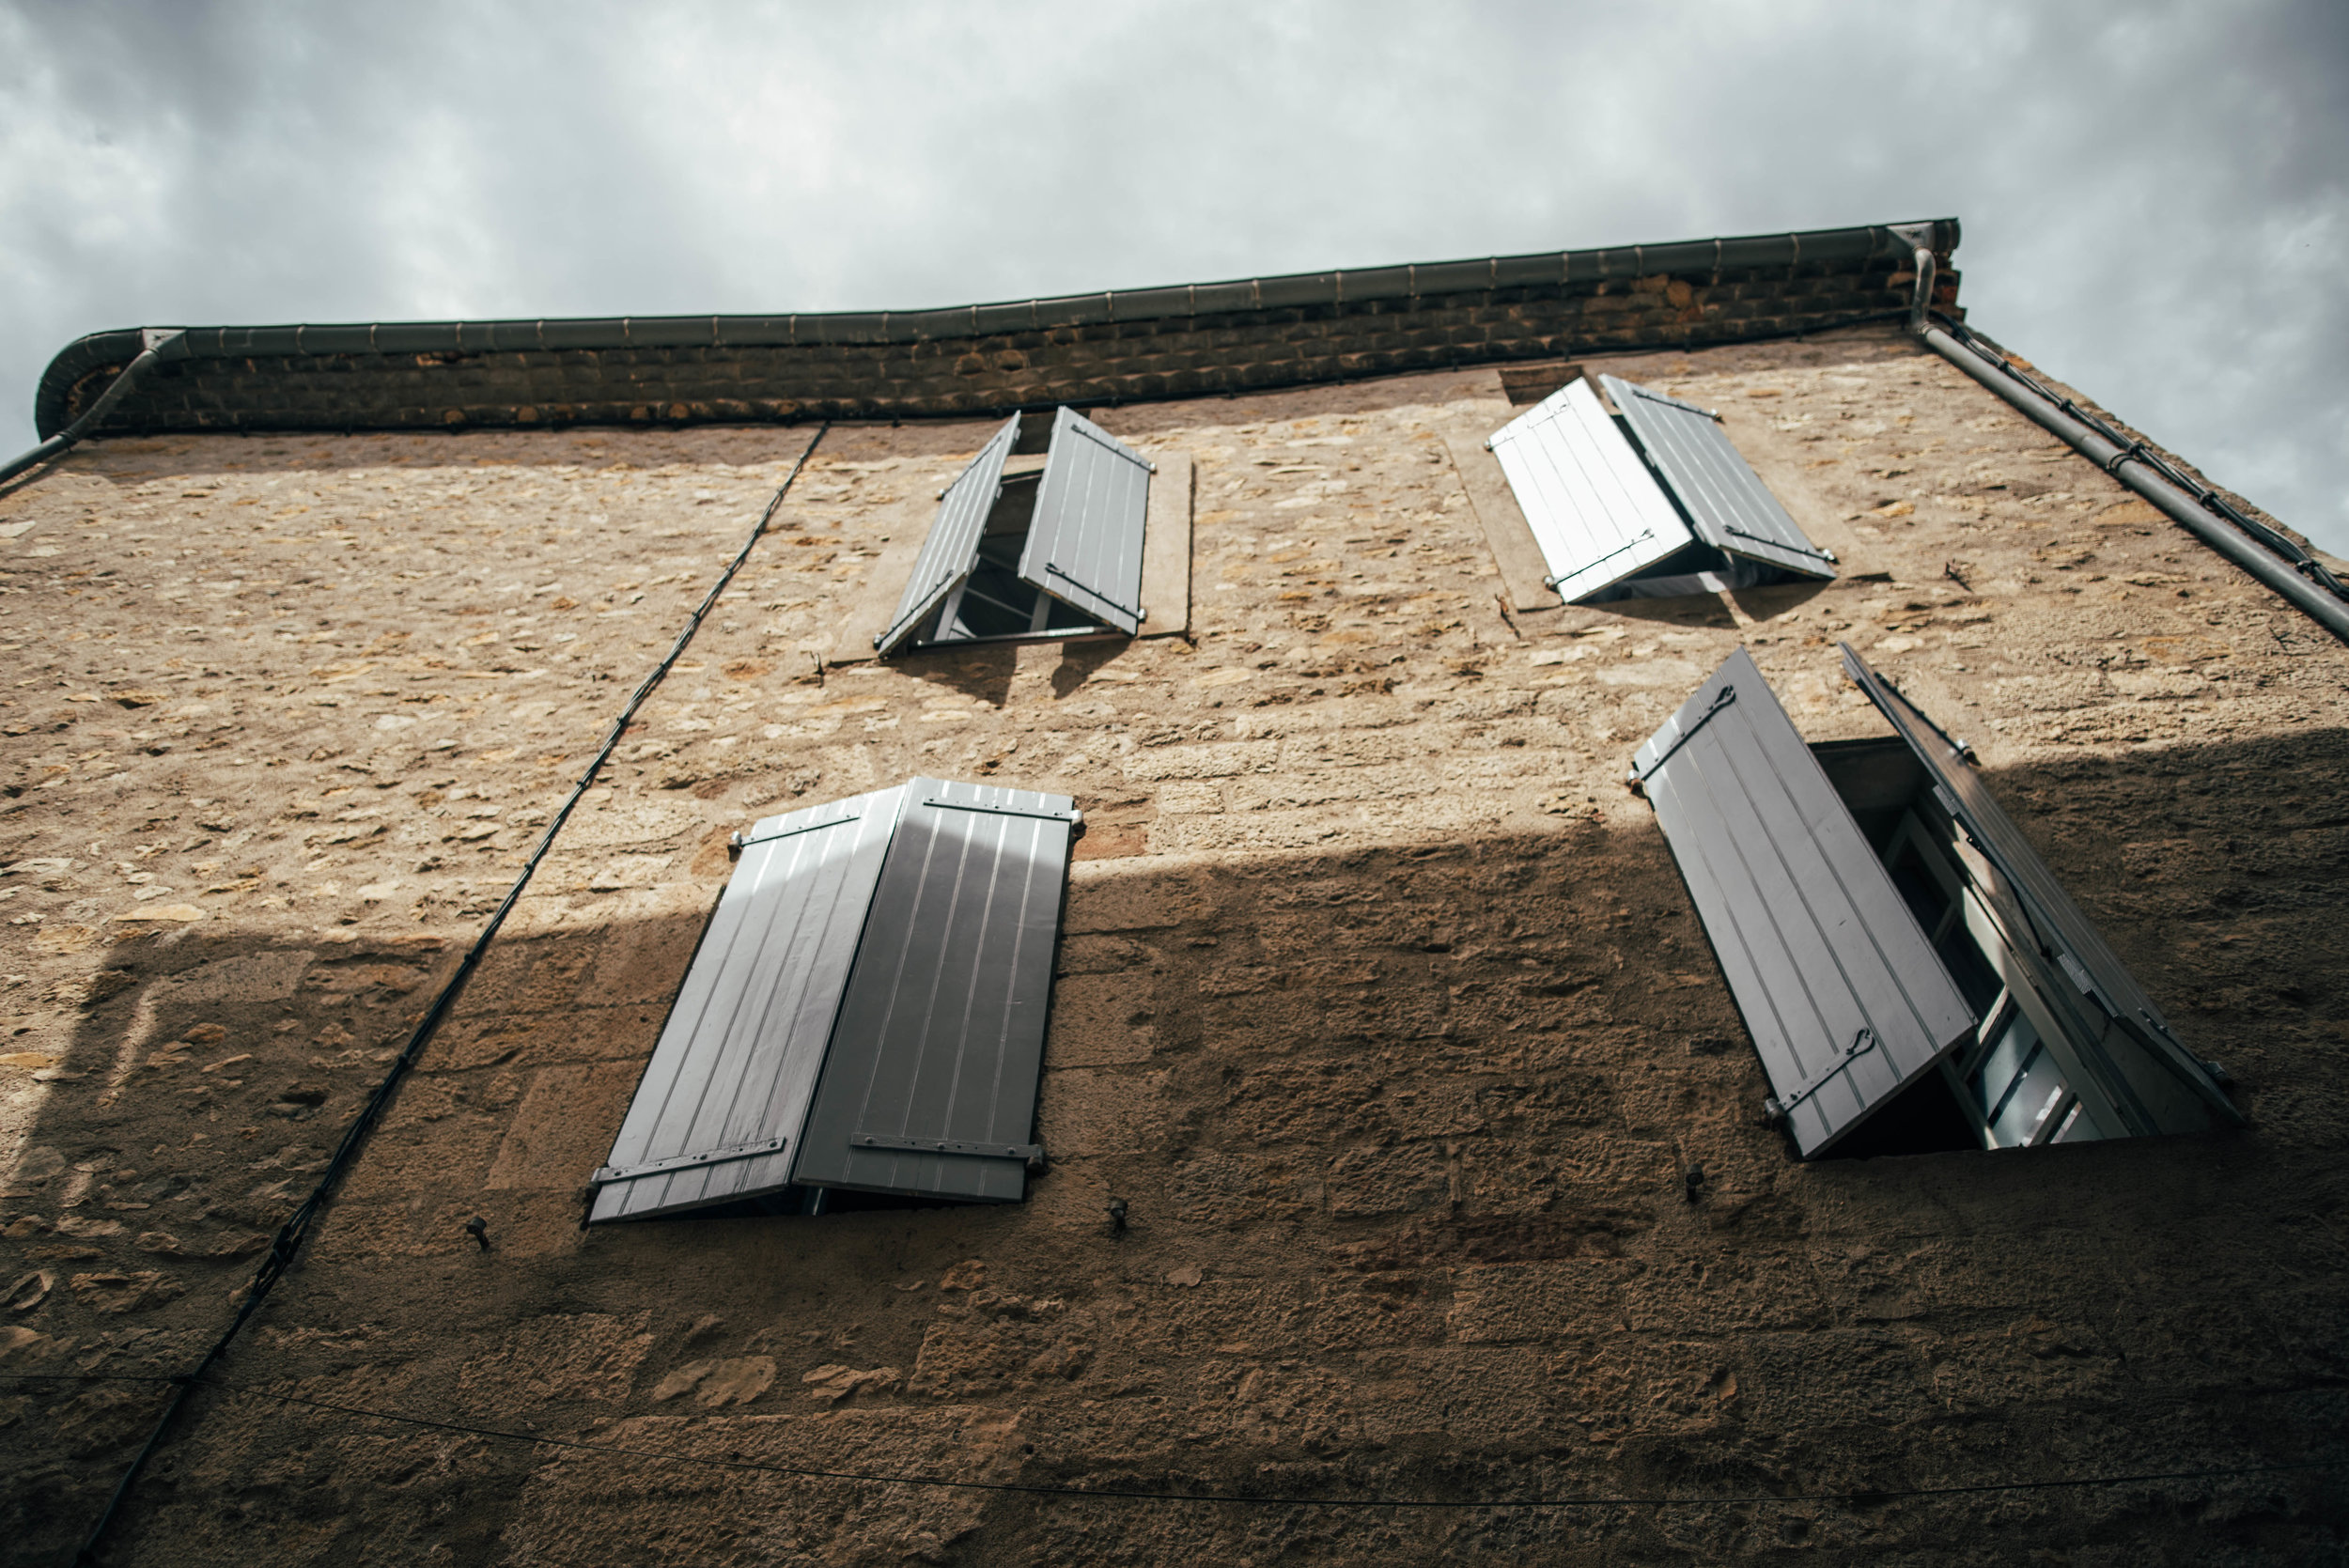 House with shutters in Lagrasse France Essex UK Documentary Photographer